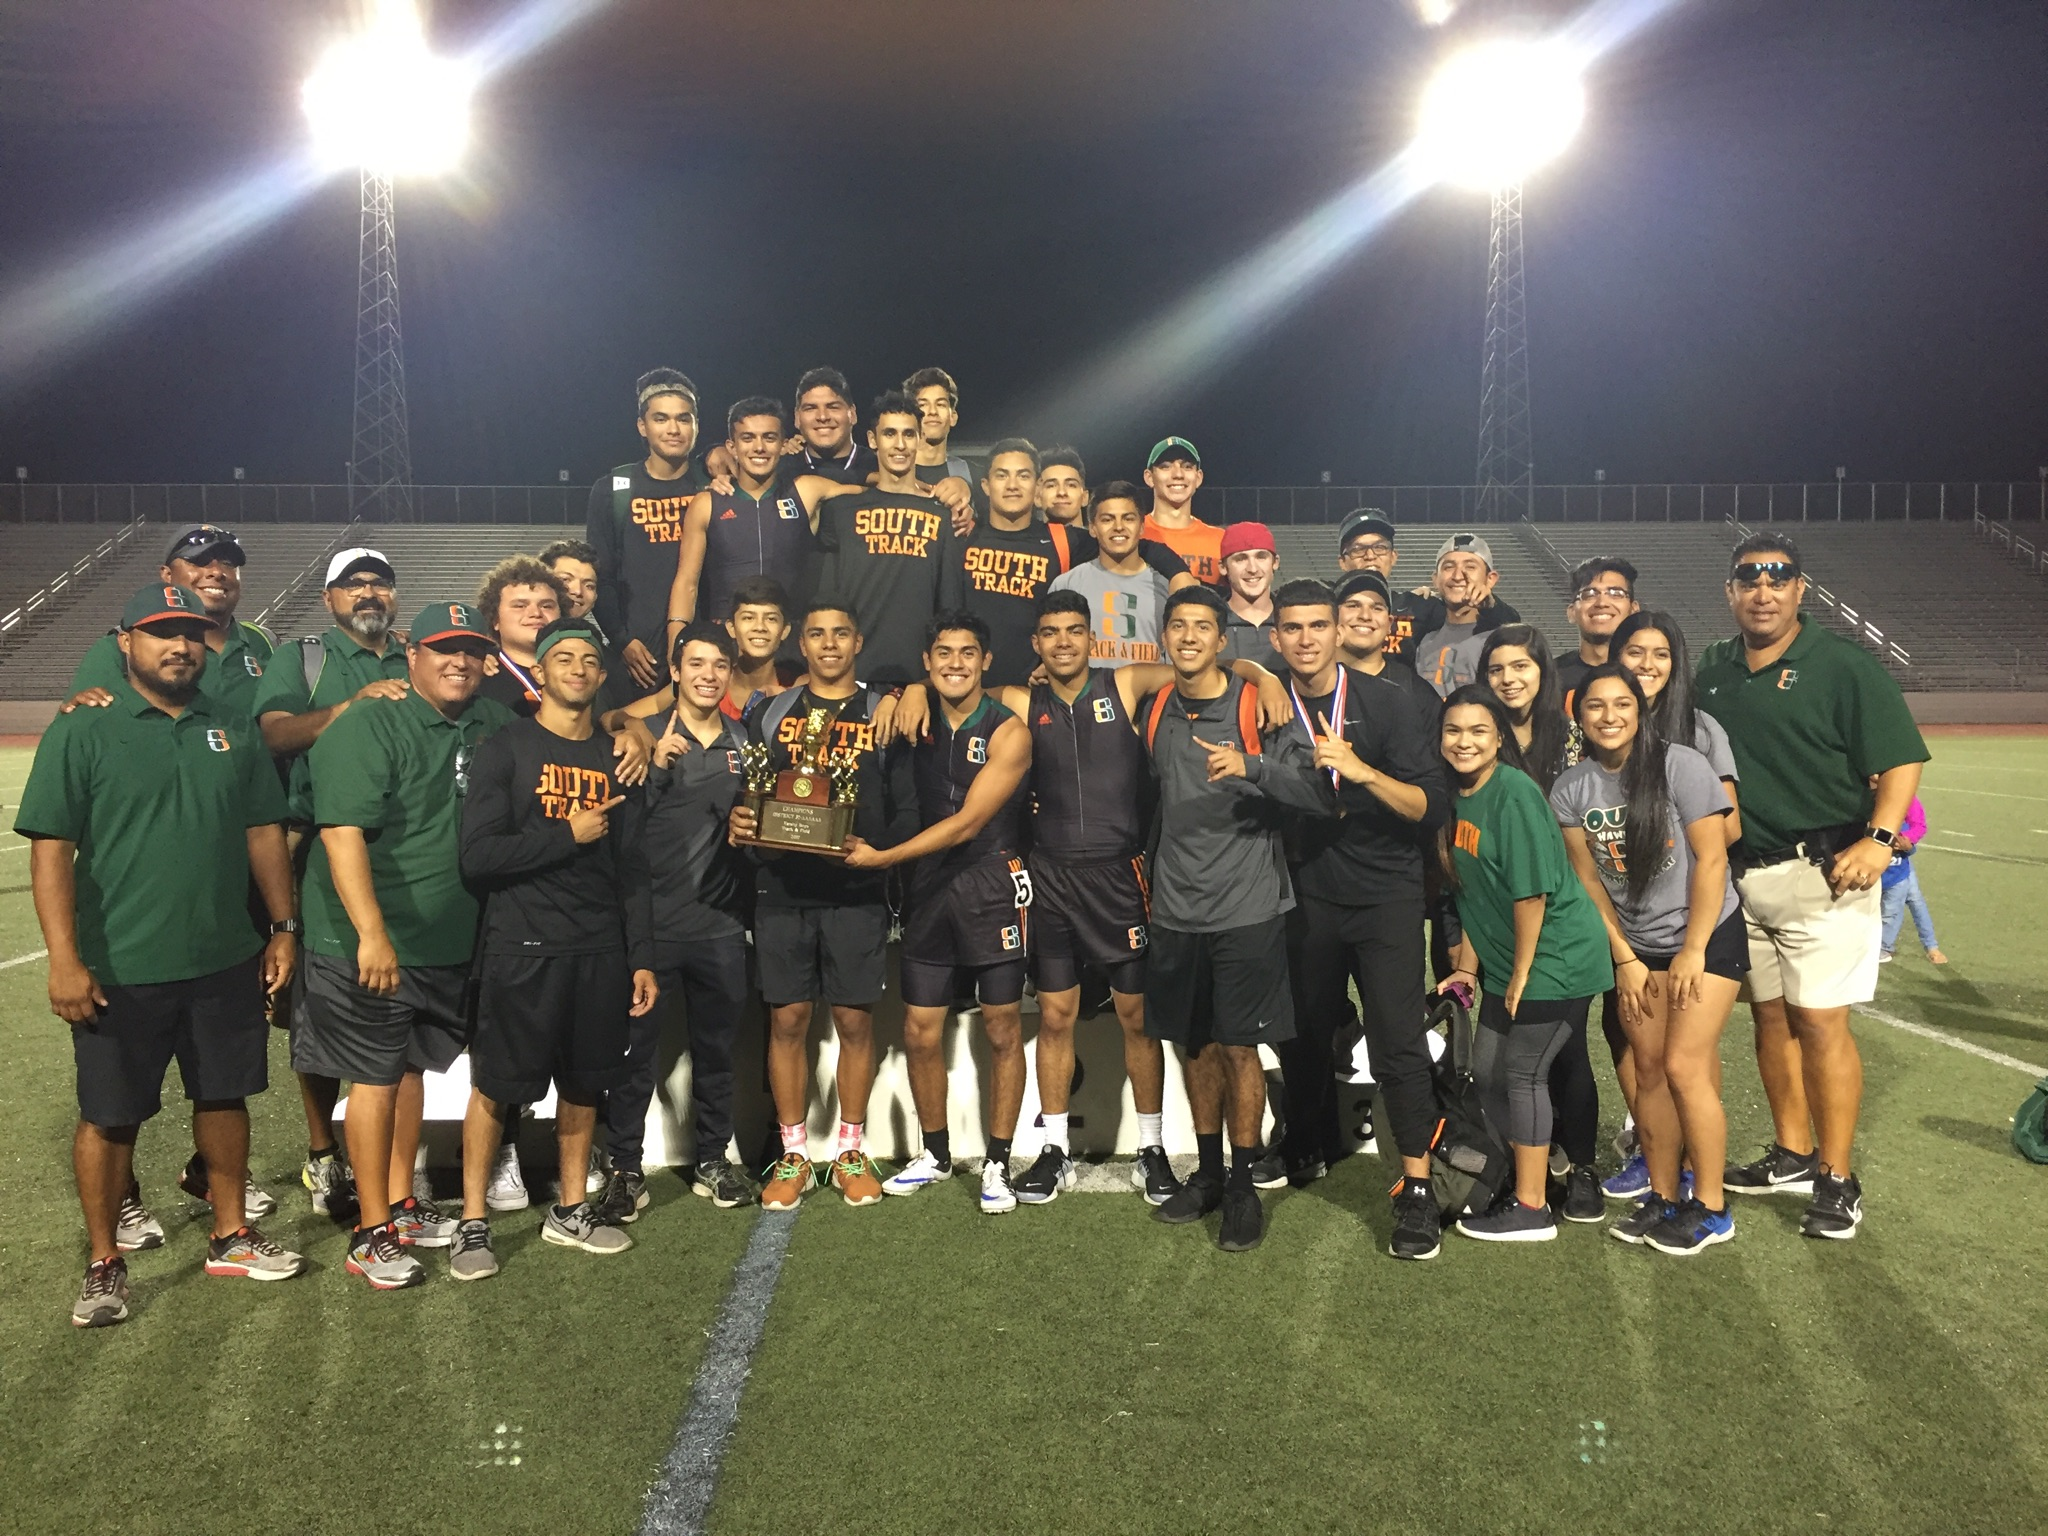 South track wins District Championship